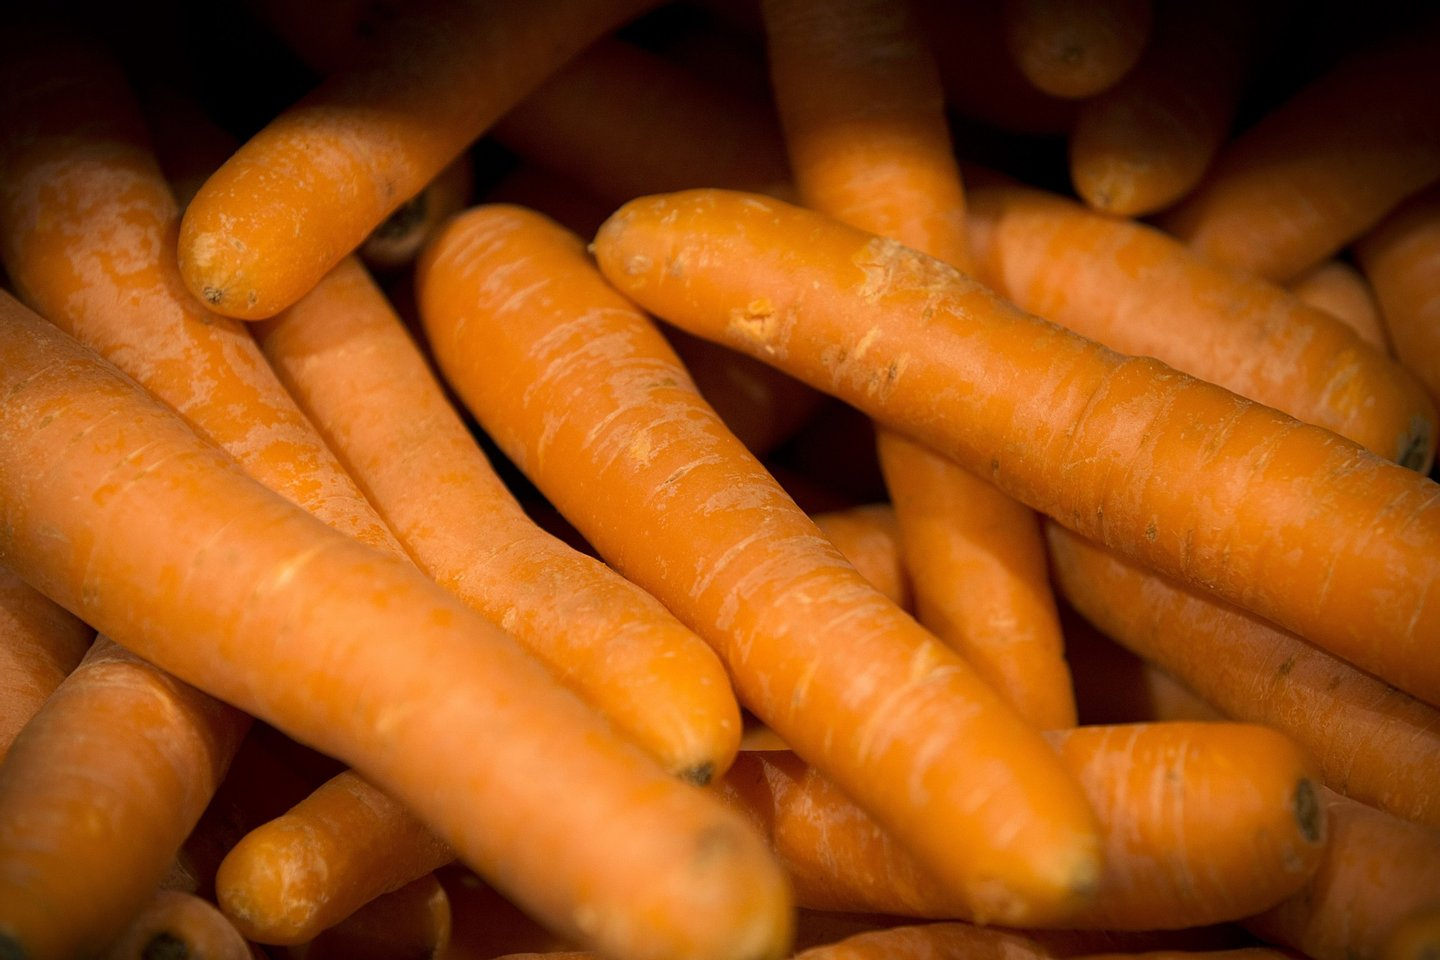 This picture taken on May 9, 2014 shows carrots on a supermarket display in Paris, France. AFP PHOTO /JOEL SAGET        (Photo credit should read JOEL SAGET/AFP/Getty Images)